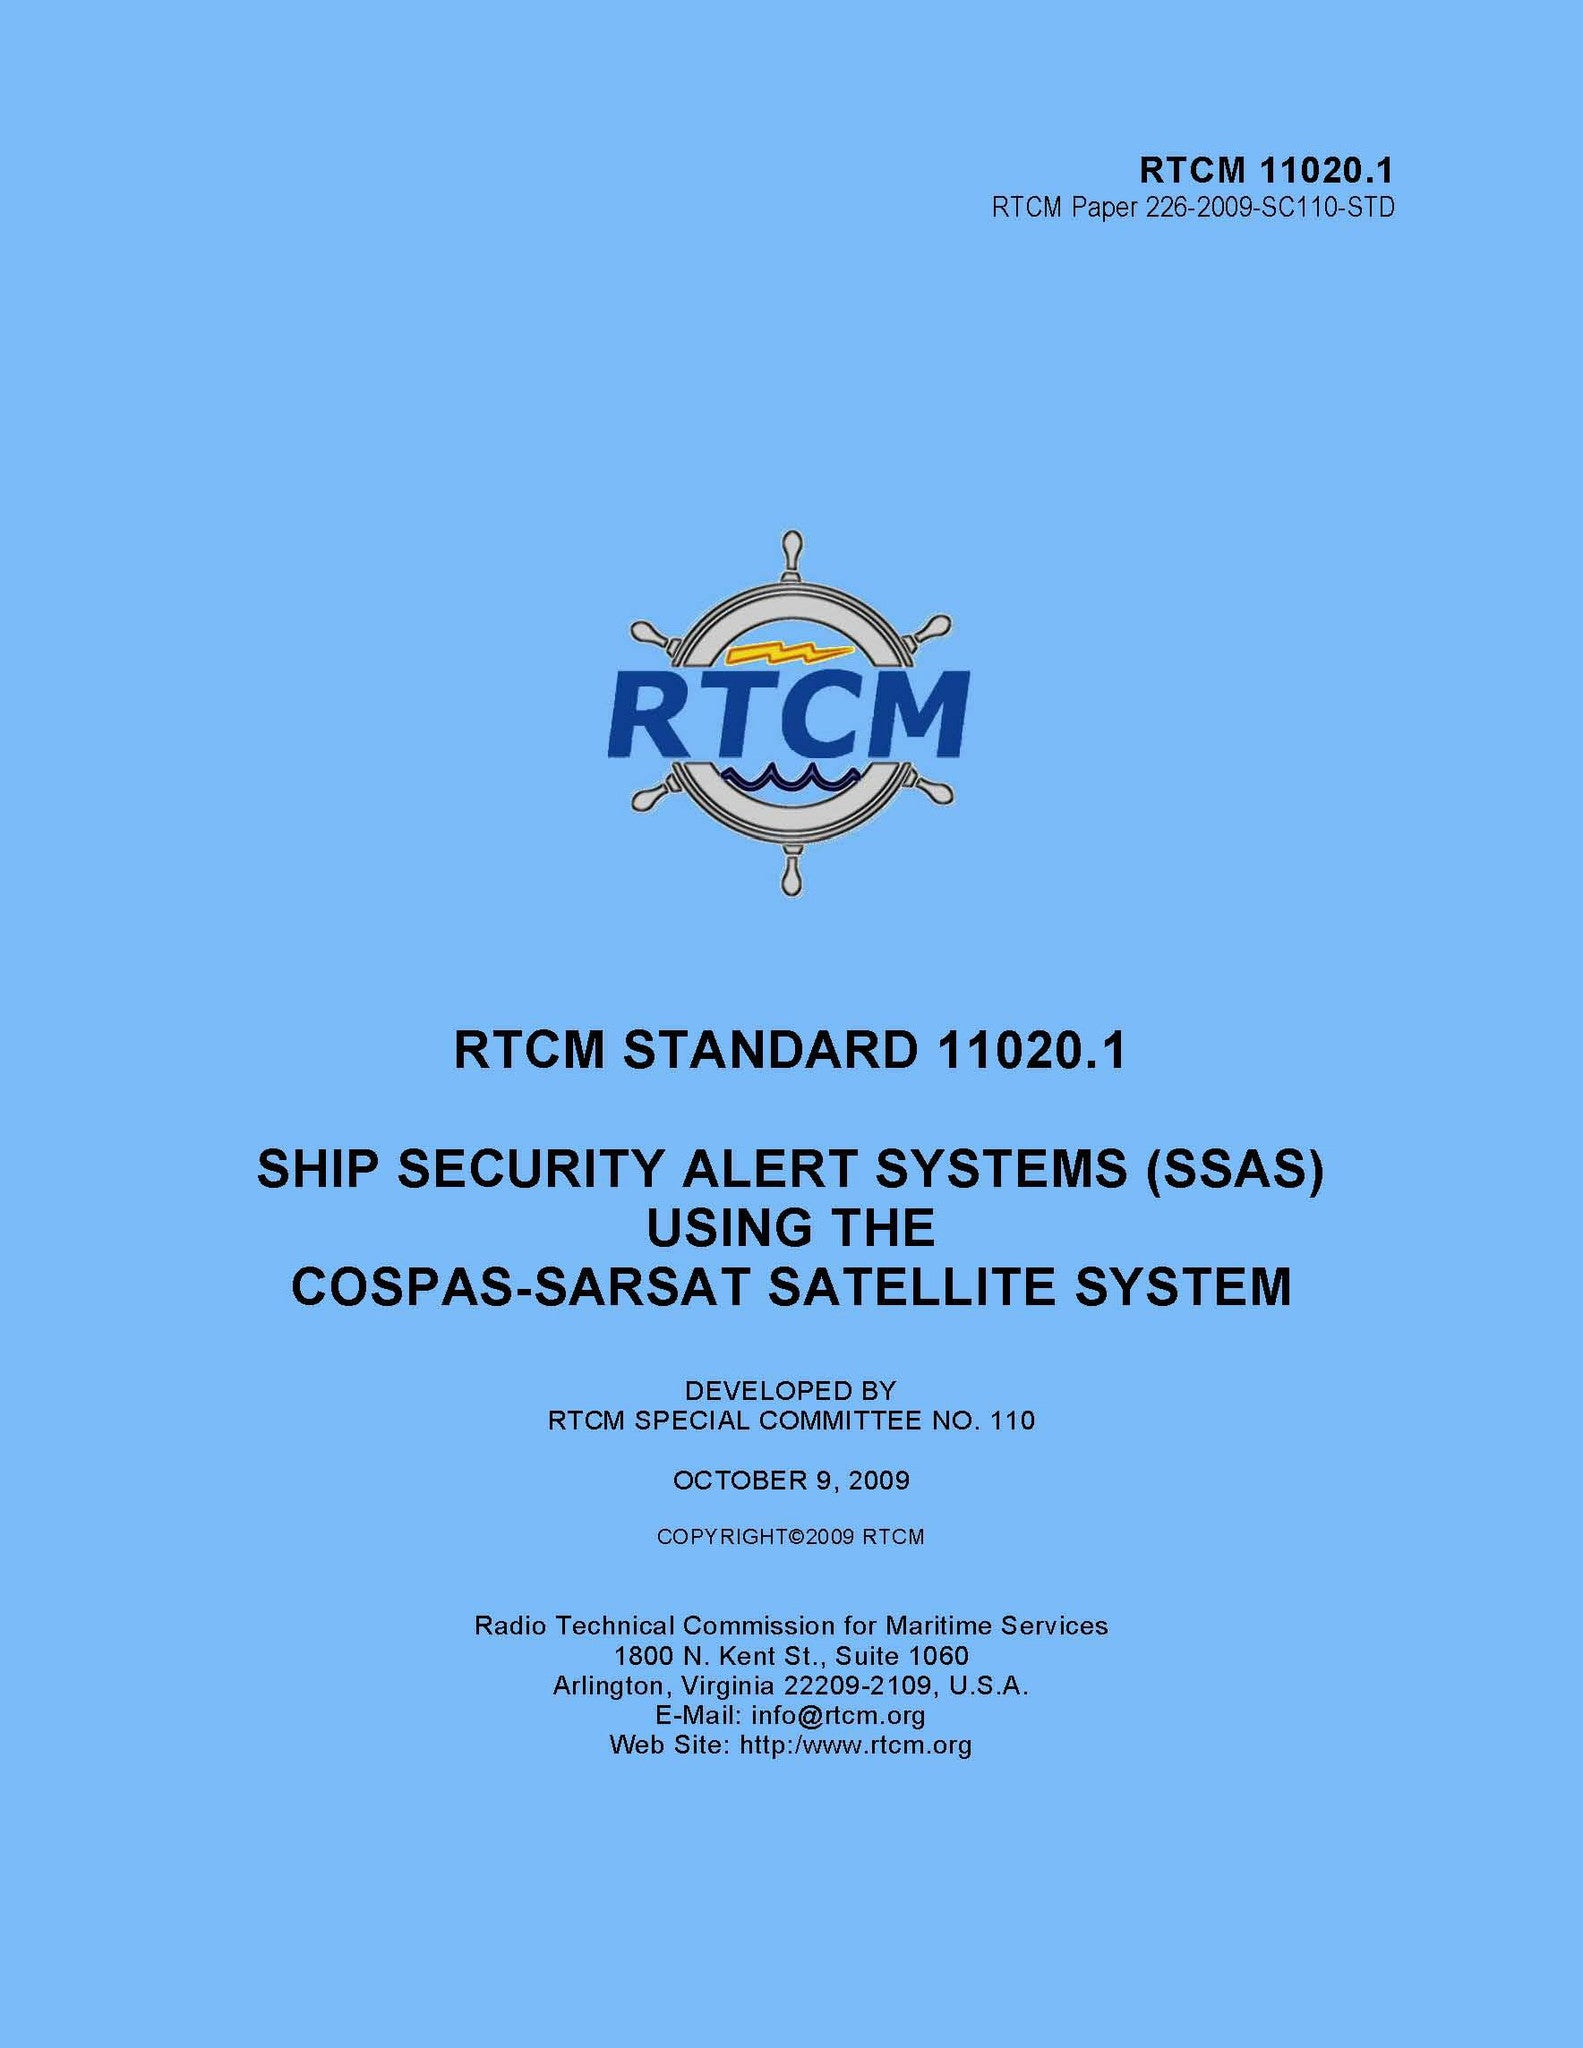 RTCM 11020.1 (RTCM Paper 110-2004/SC110-STD), Standard for Ship Security Alert Systems (SSAS) using the Cospas-Sarsat System